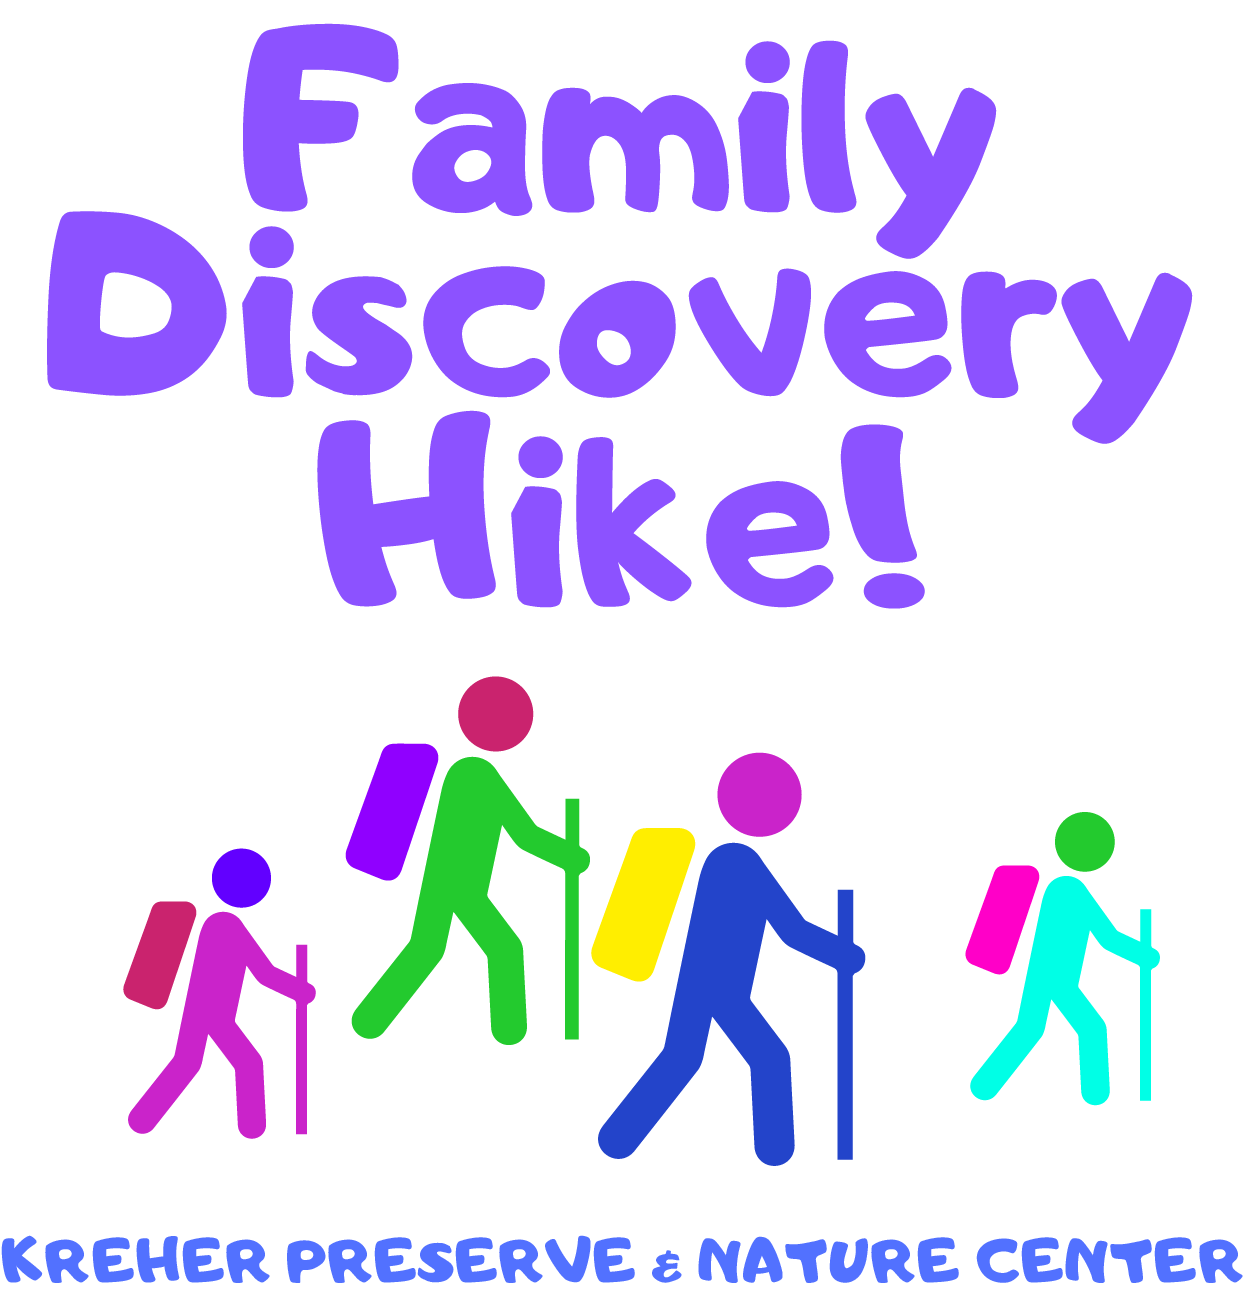 Family Discovery Hike